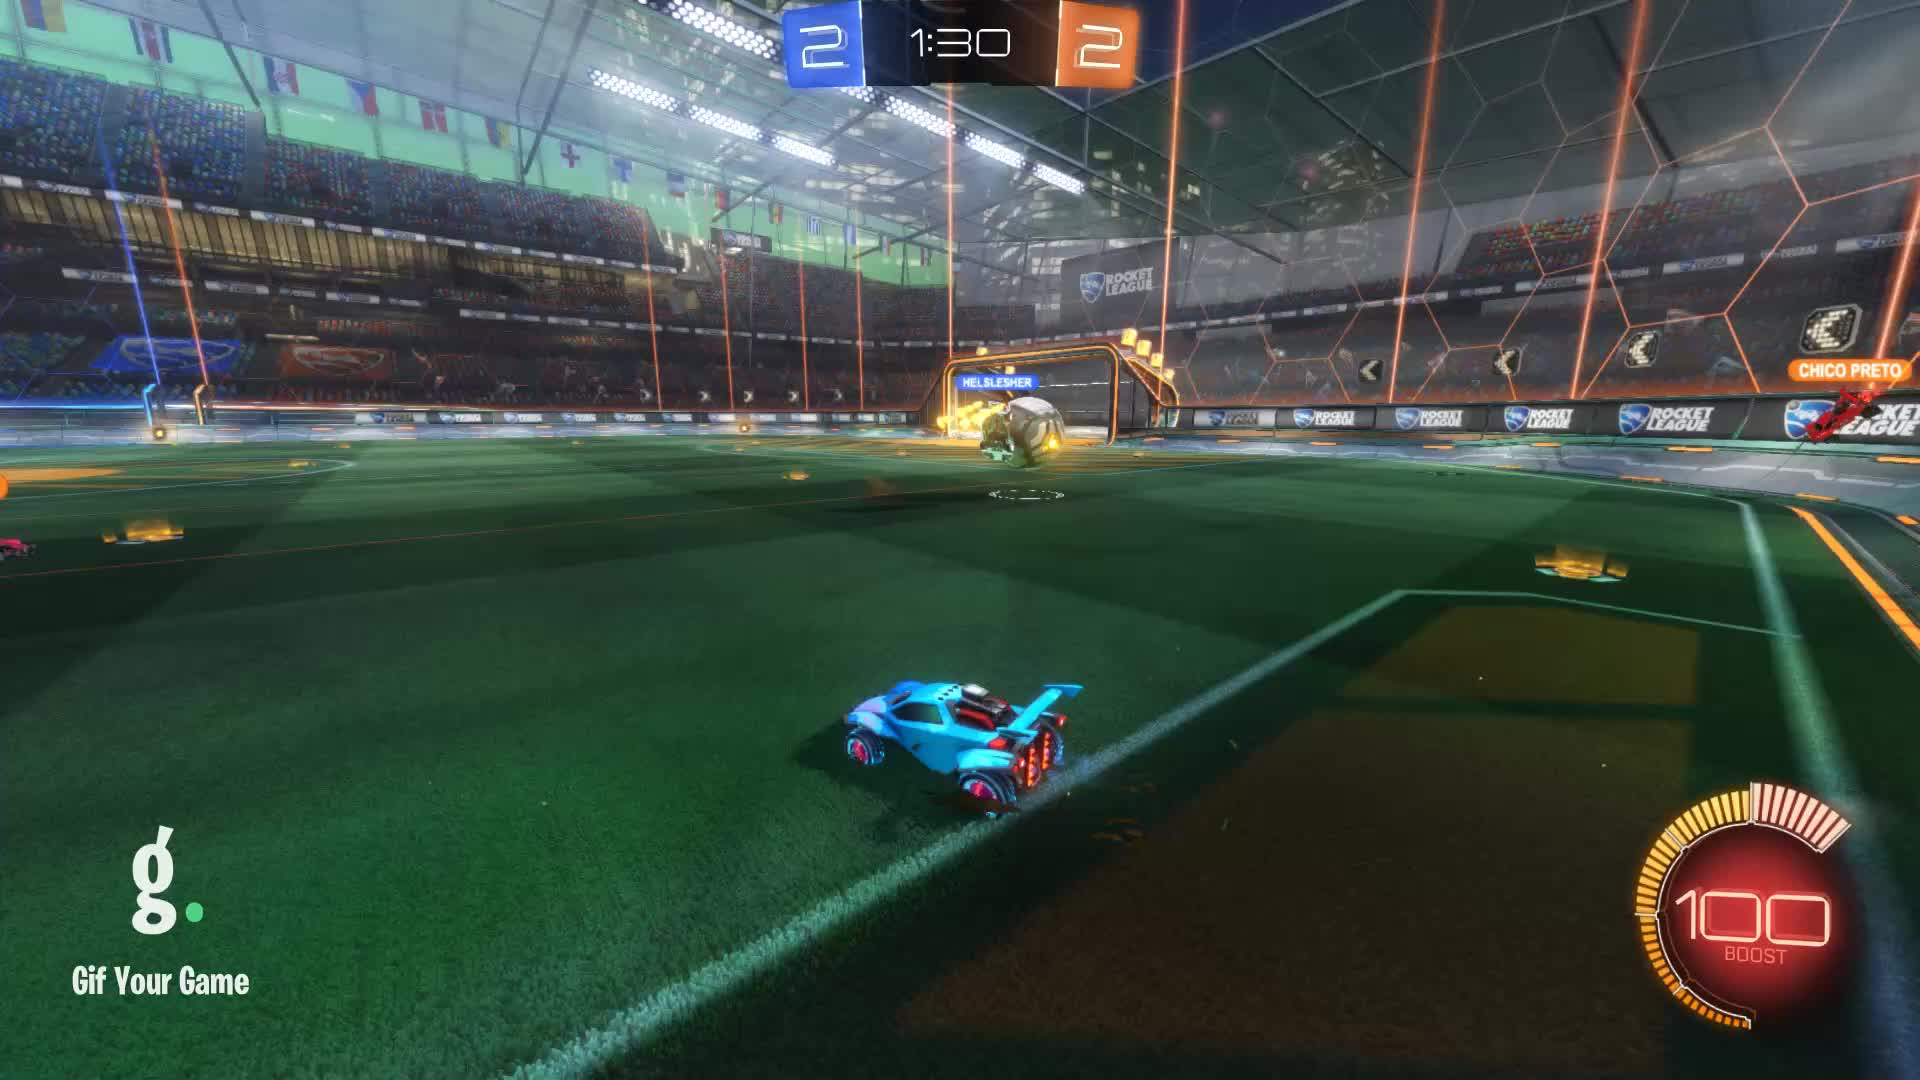 Assist, Gif Your Game, GifYourGame, Rocket League, RocketLeague, Timper [NL], Assist 4: Timper [NL] GIFs